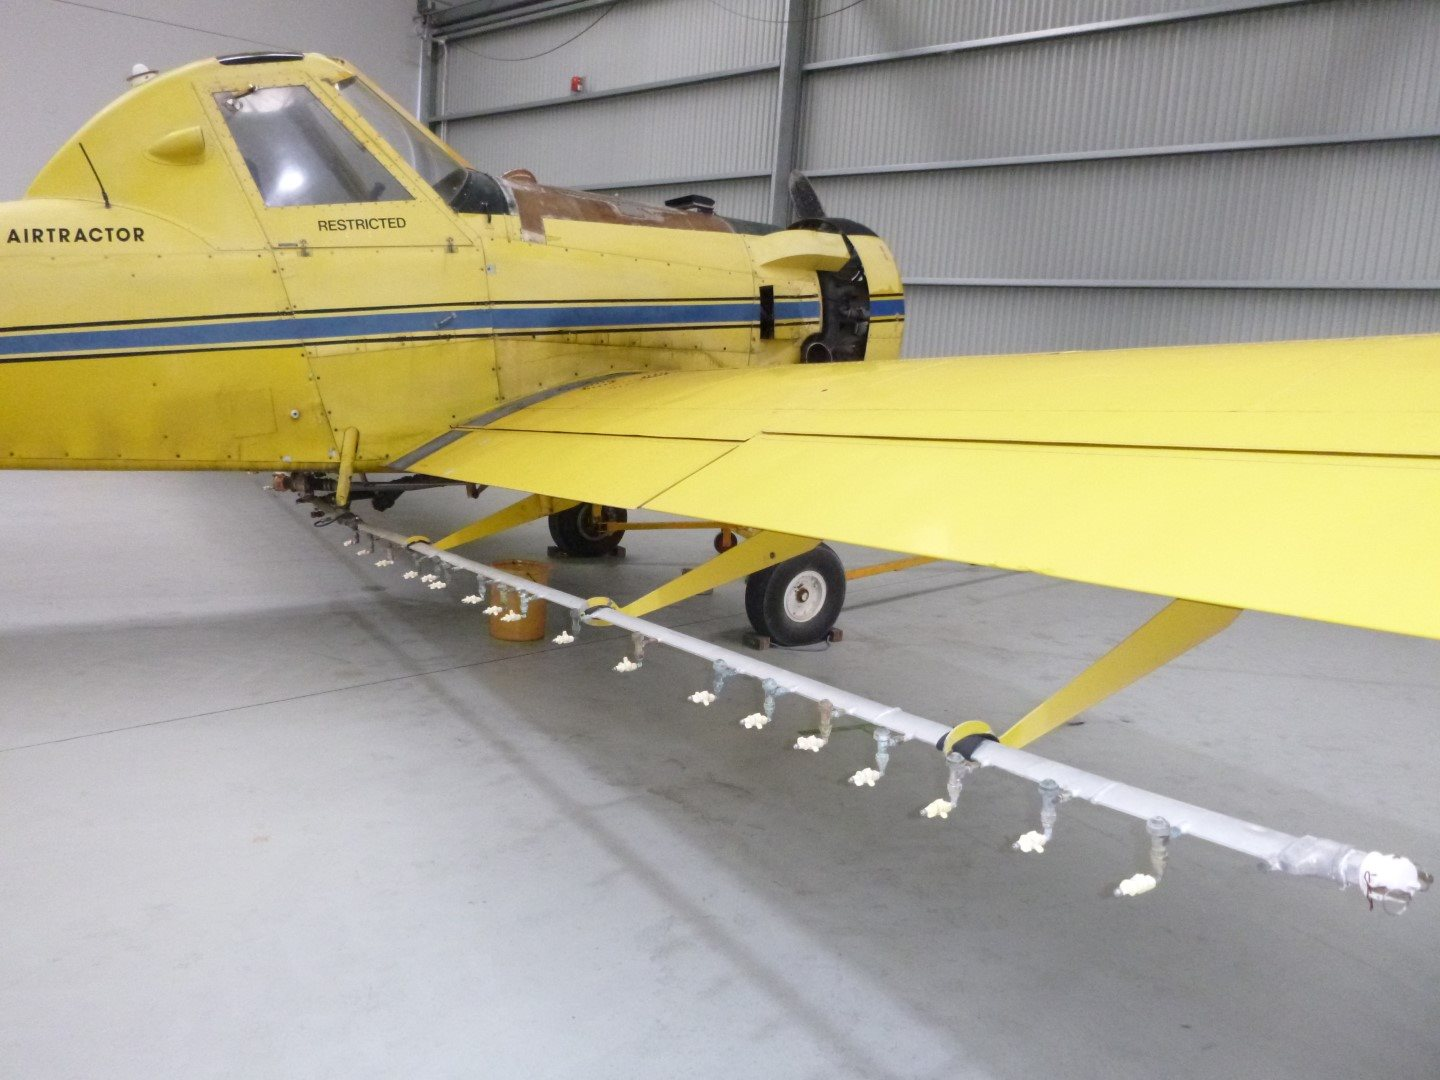 1981 Air Tractor 300-301